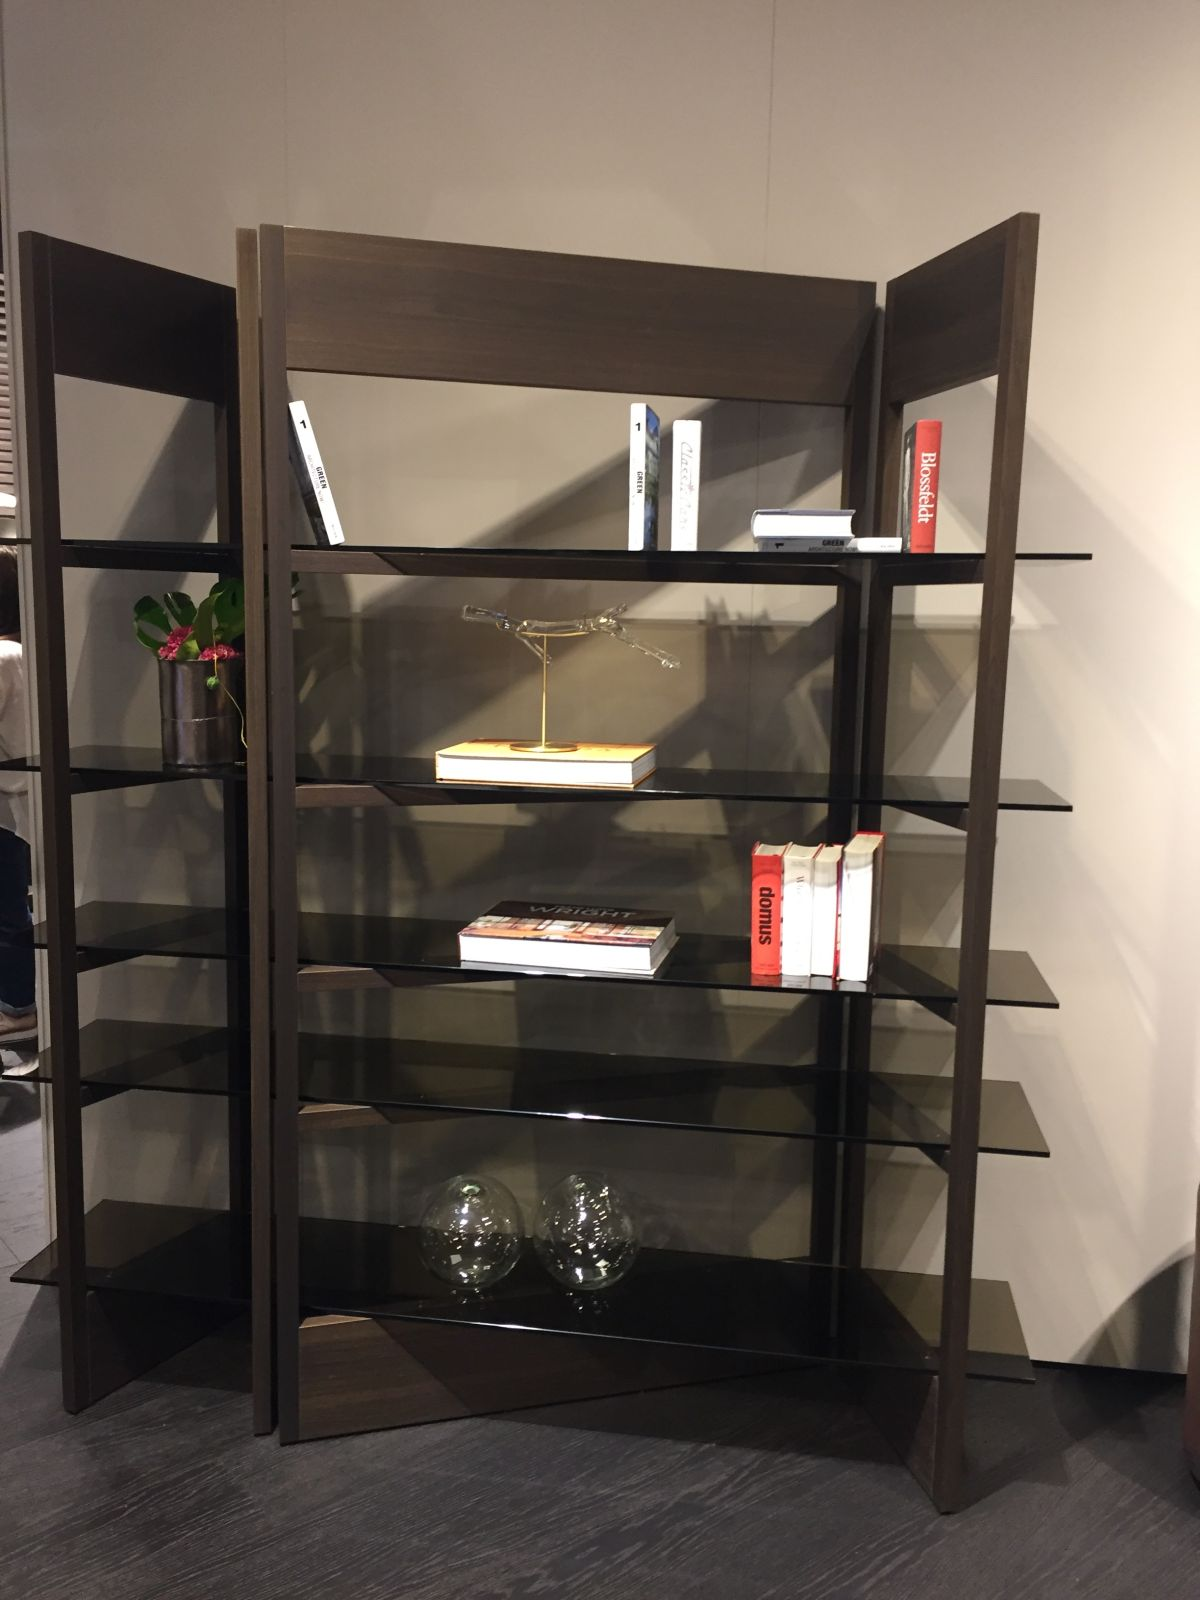 Attractive Wall Unit With An Unusual Angle